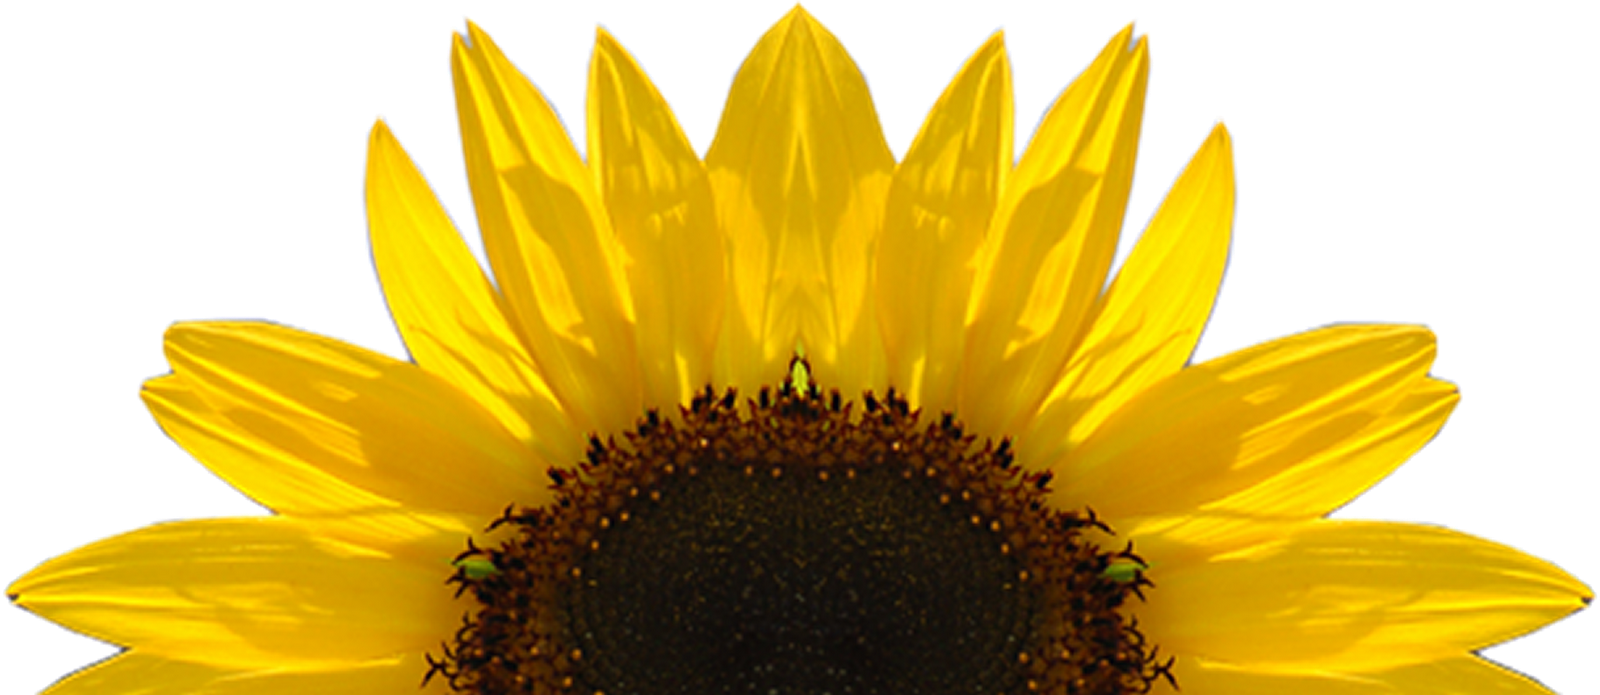 Download Free High quality Sunflower Png Transparent Images